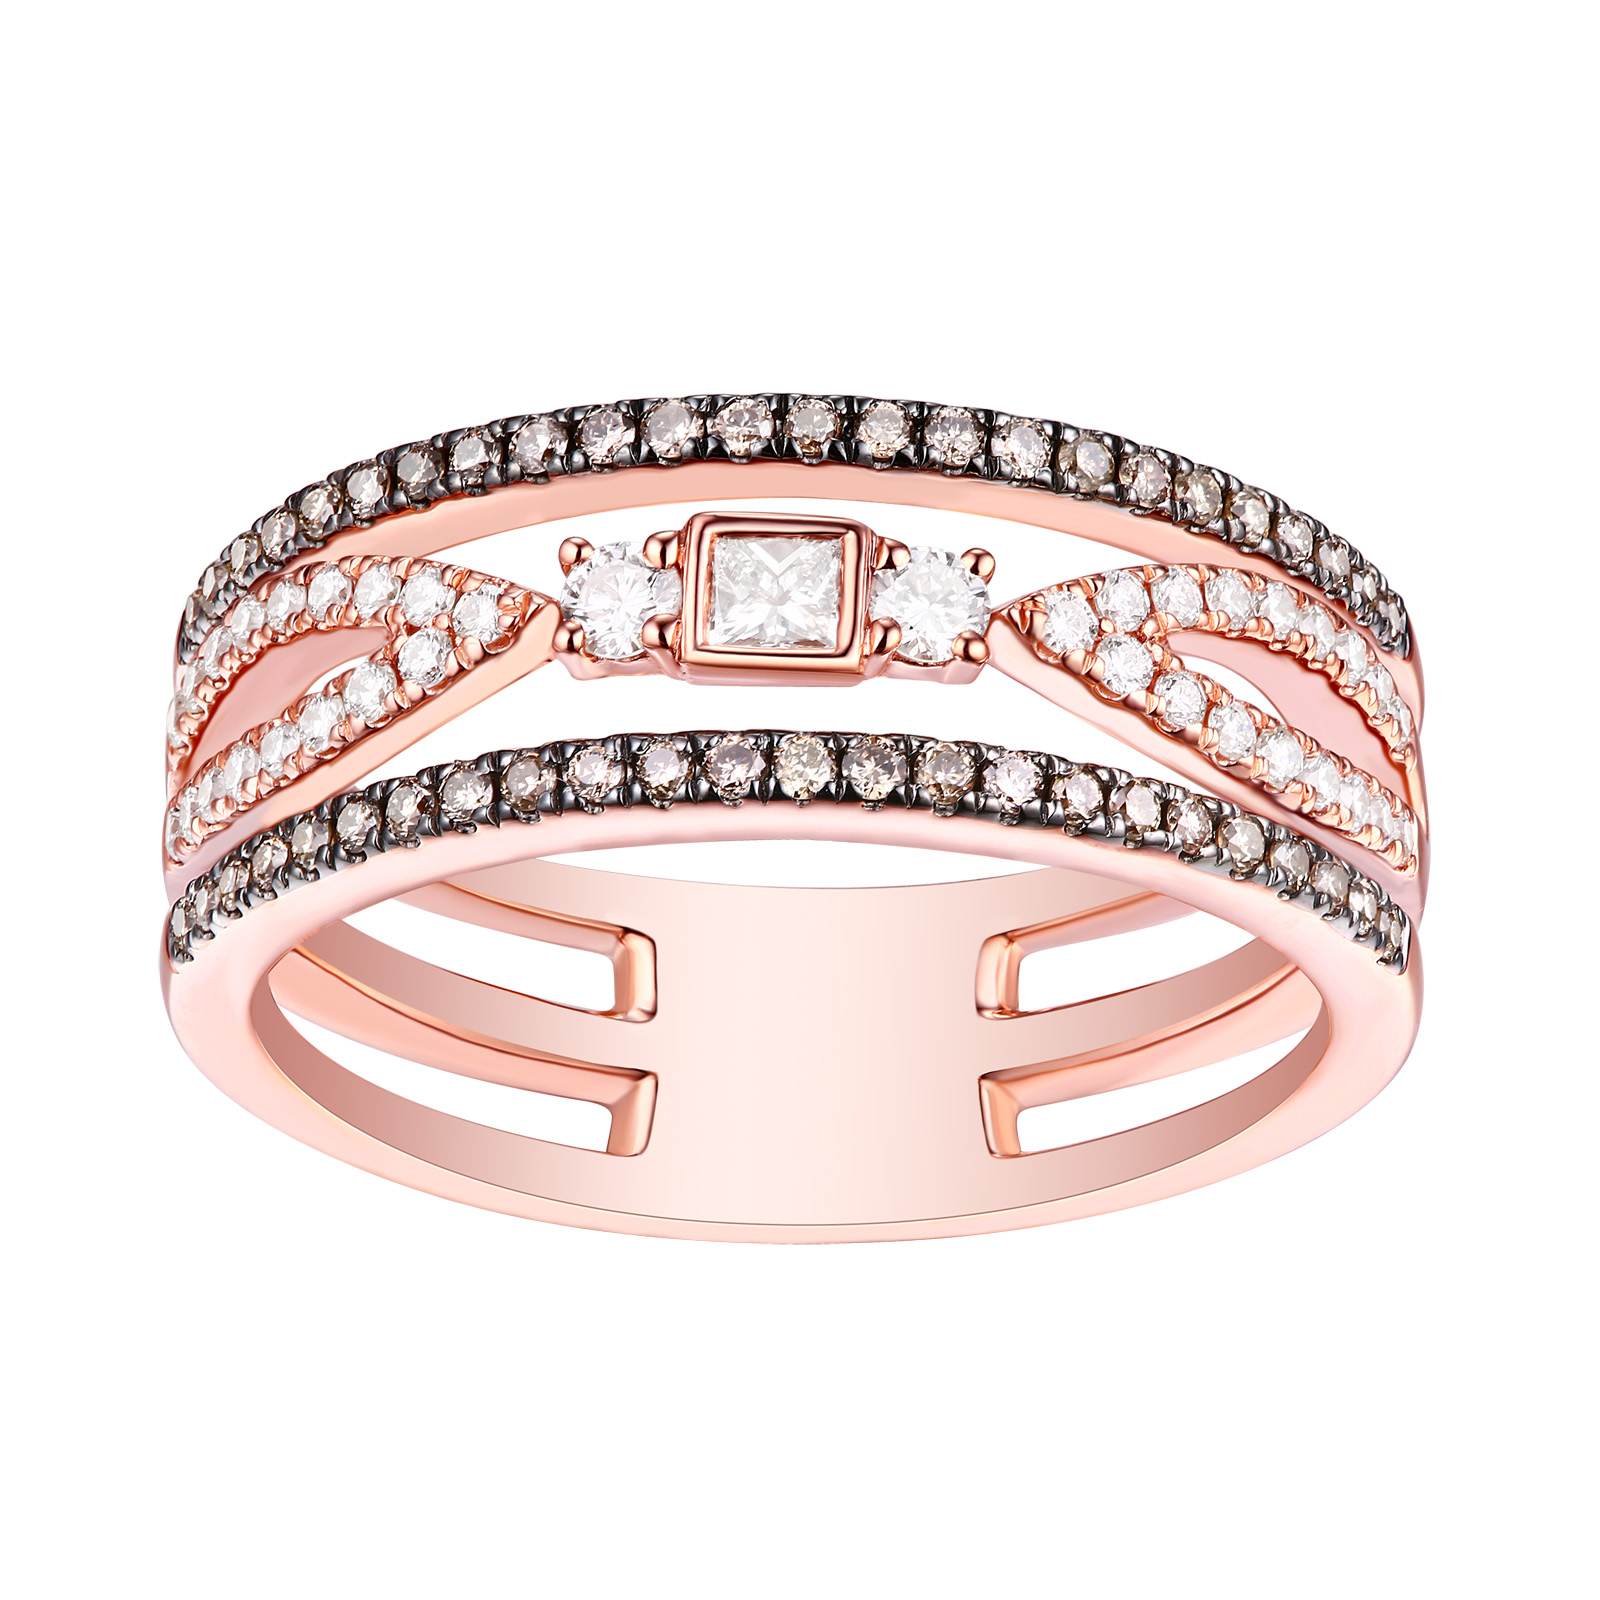 R25911WBR- 14K Rose Gold Diamond Ring, 0.50 TCW